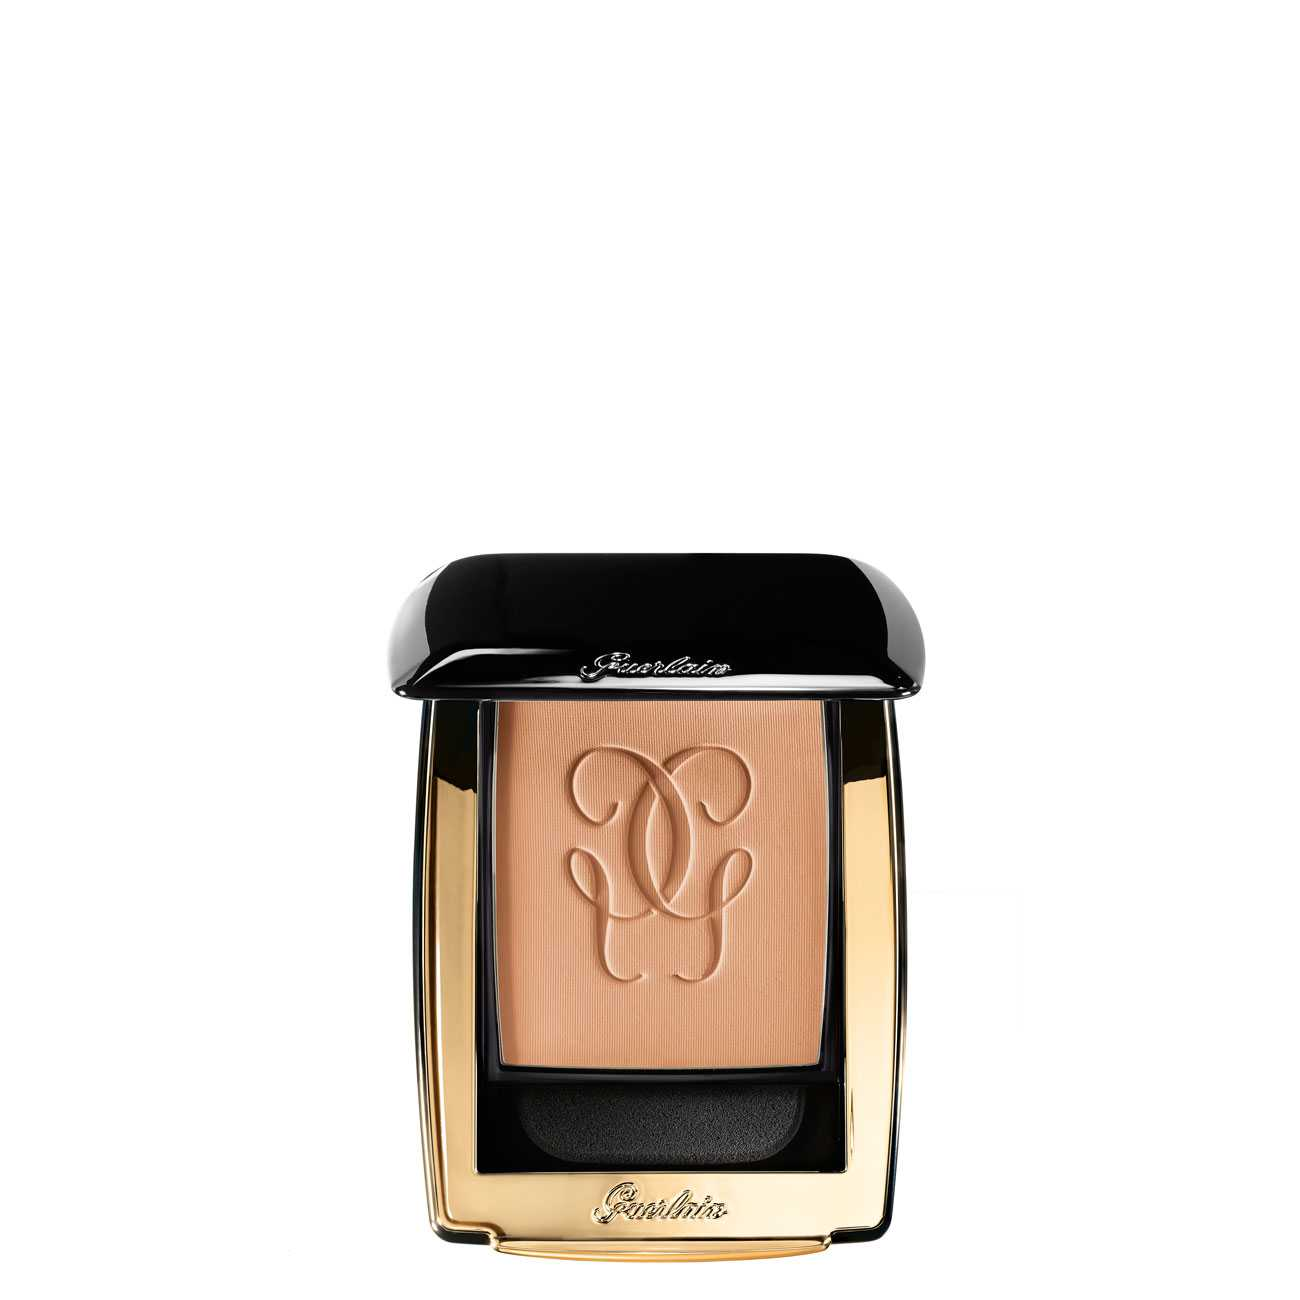 Parure Gold Compact Foundation 10 G Beige Natural 3 Guerlain imagine 2021 bestvalue.eu